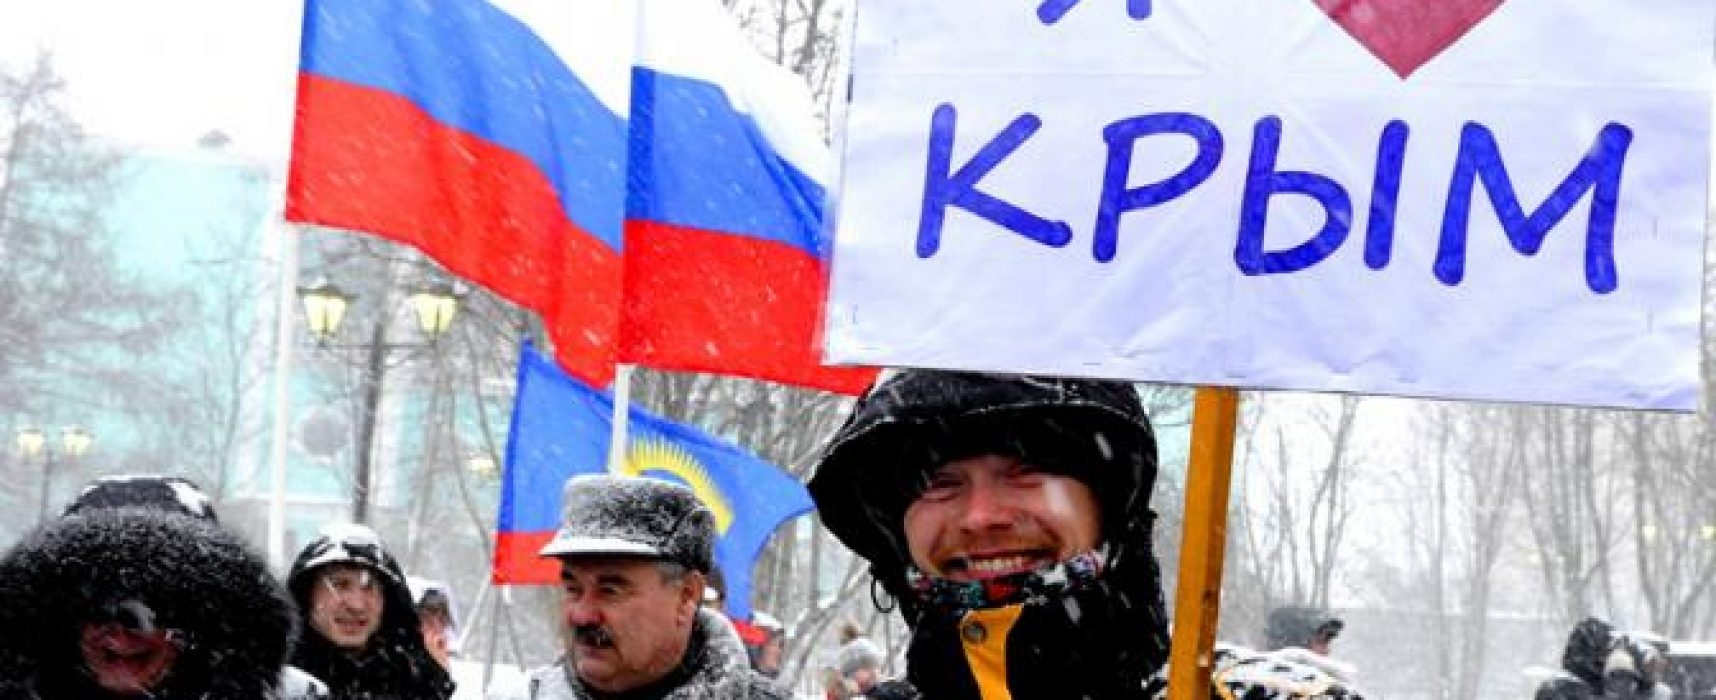 'Crimean Effect Weaker But Still Significant for the Kremlin, Experts Say